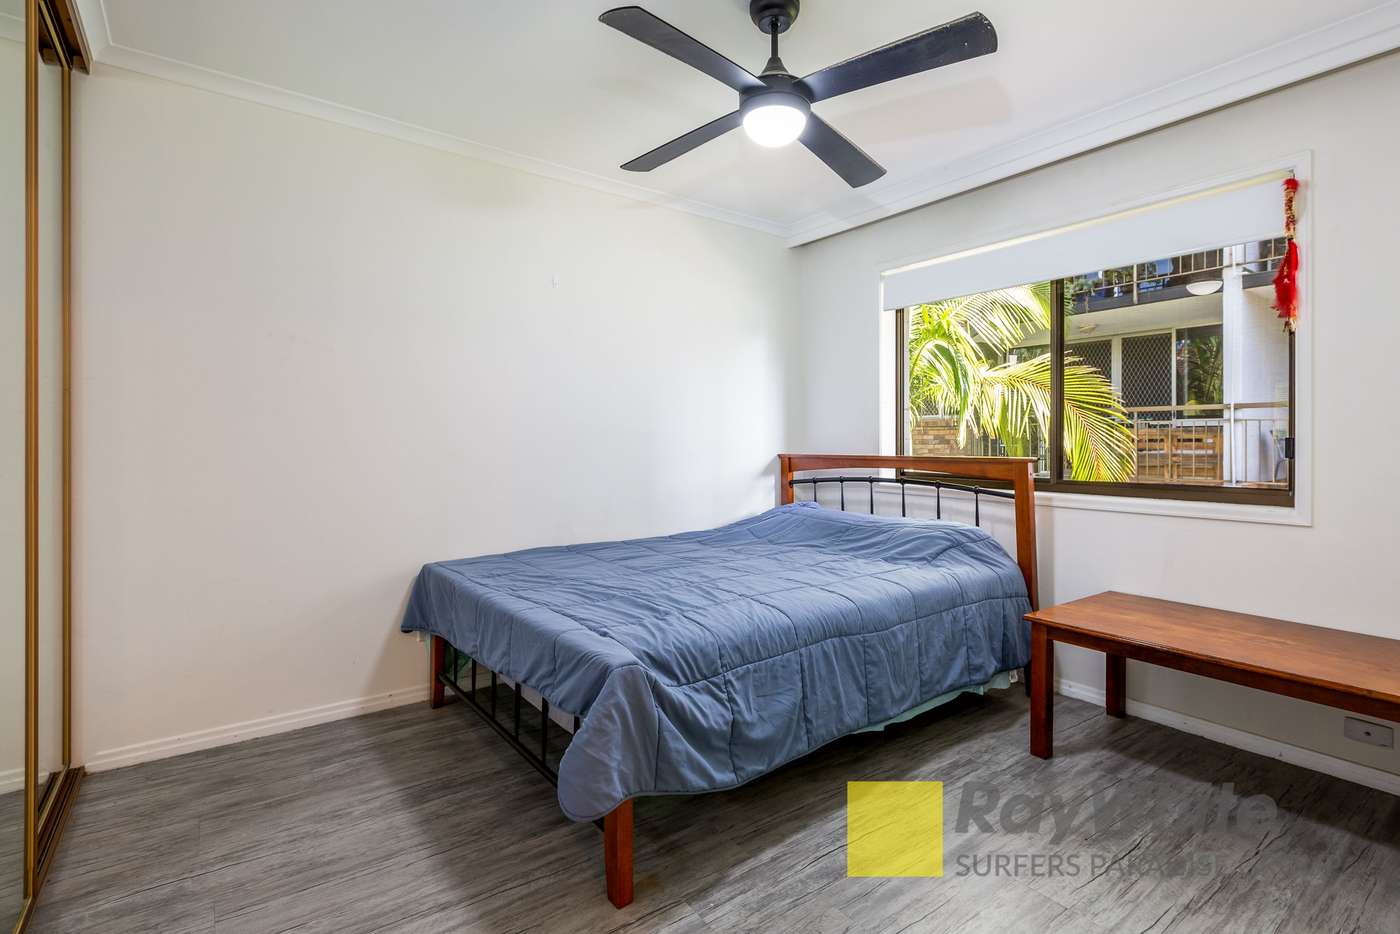 Sixth view of Homely unit listing, 7/17 Riverview Parade, Surfers Paradise QLD 4217